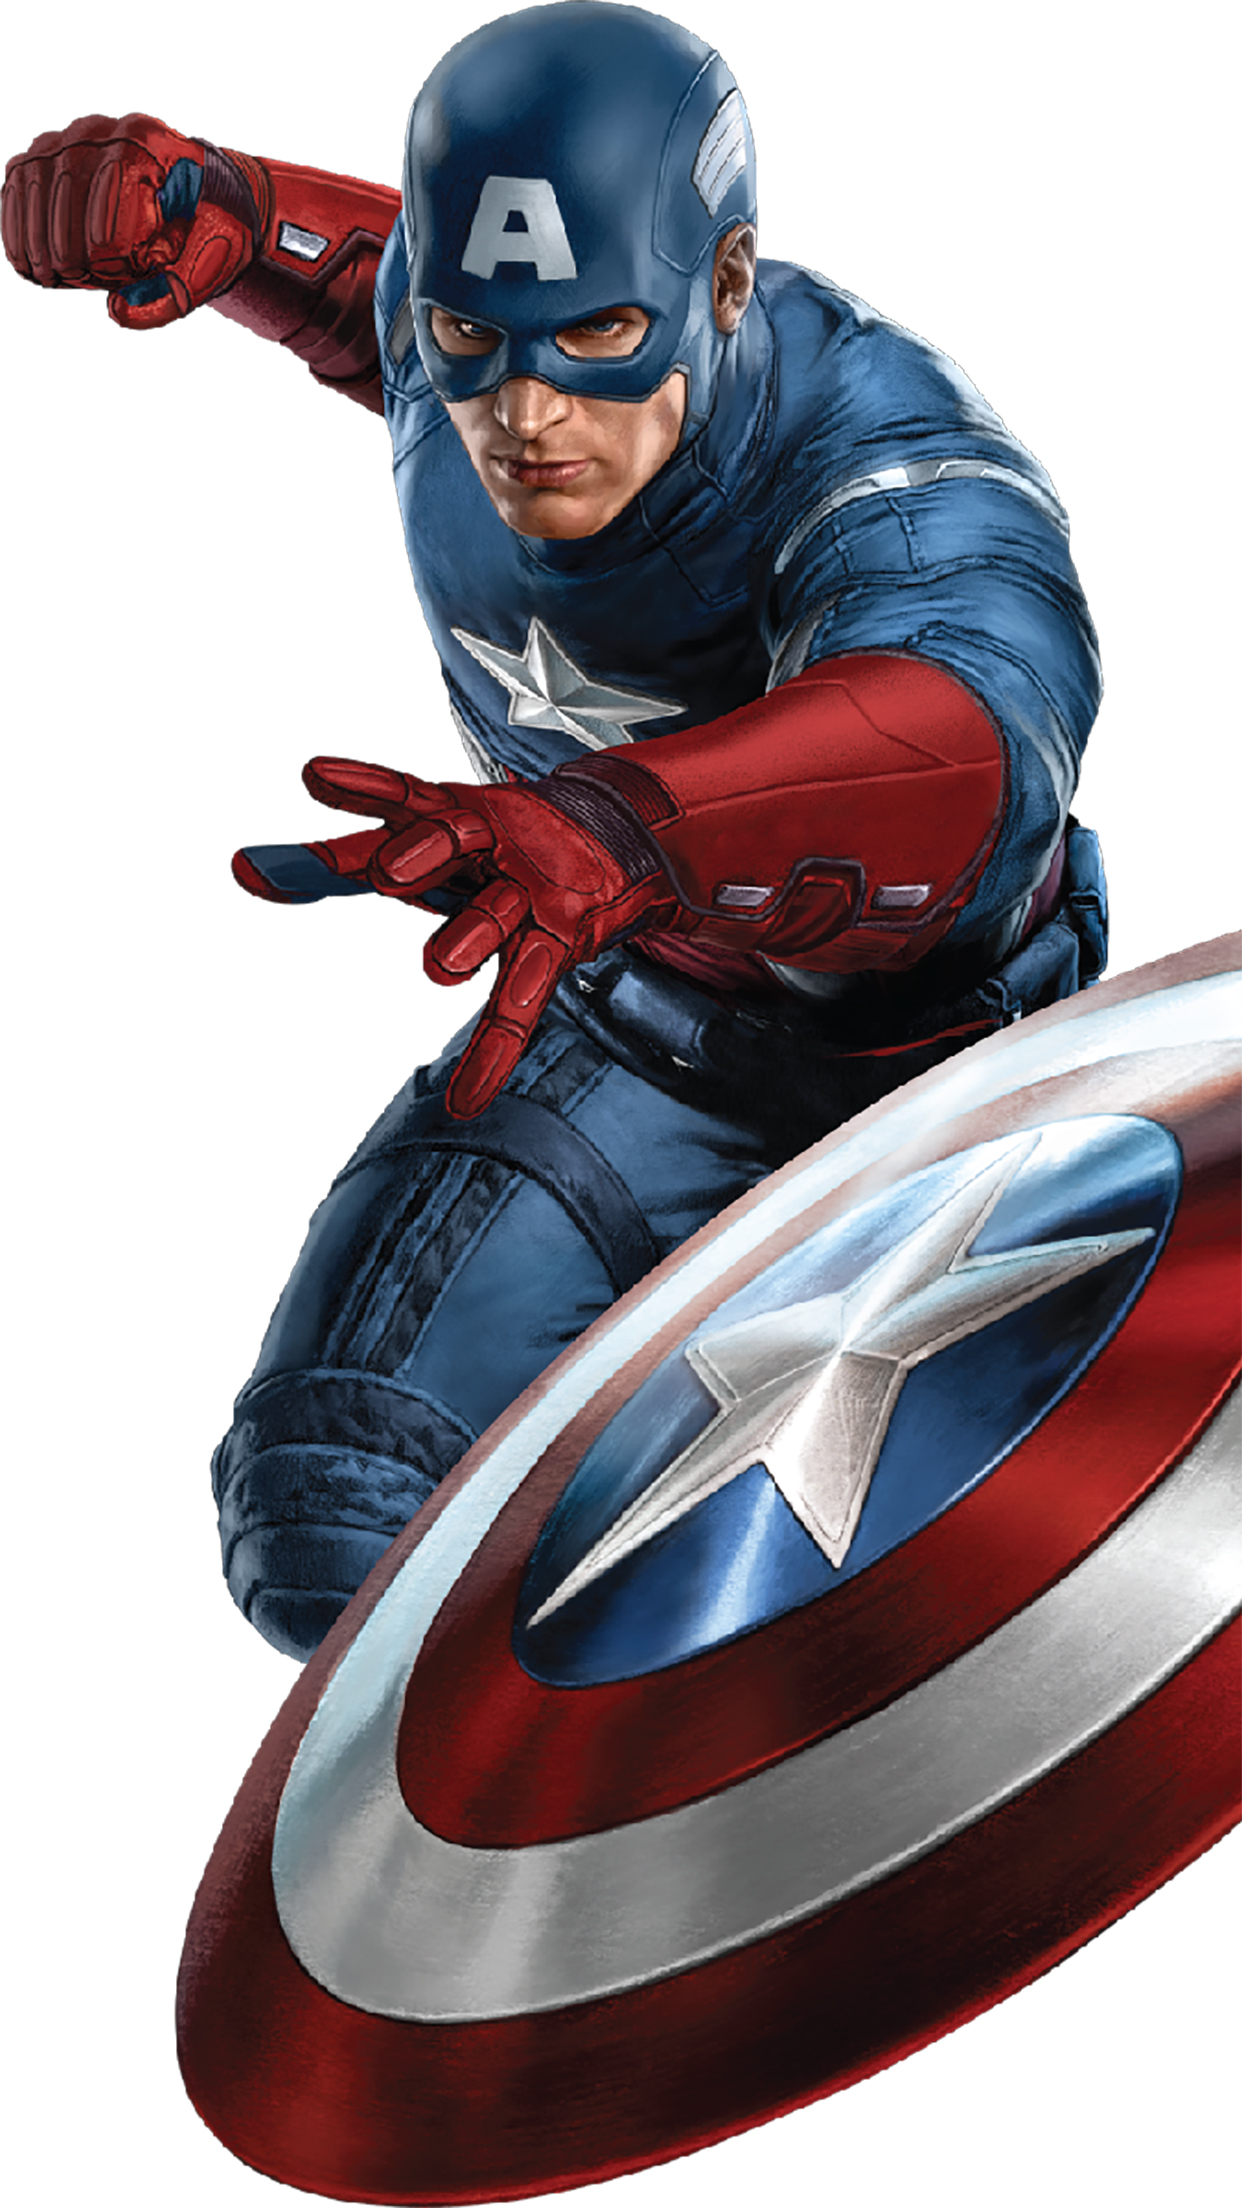 Captain America Fight 3Wallpapers IPhone Parallax Captain America : Fight